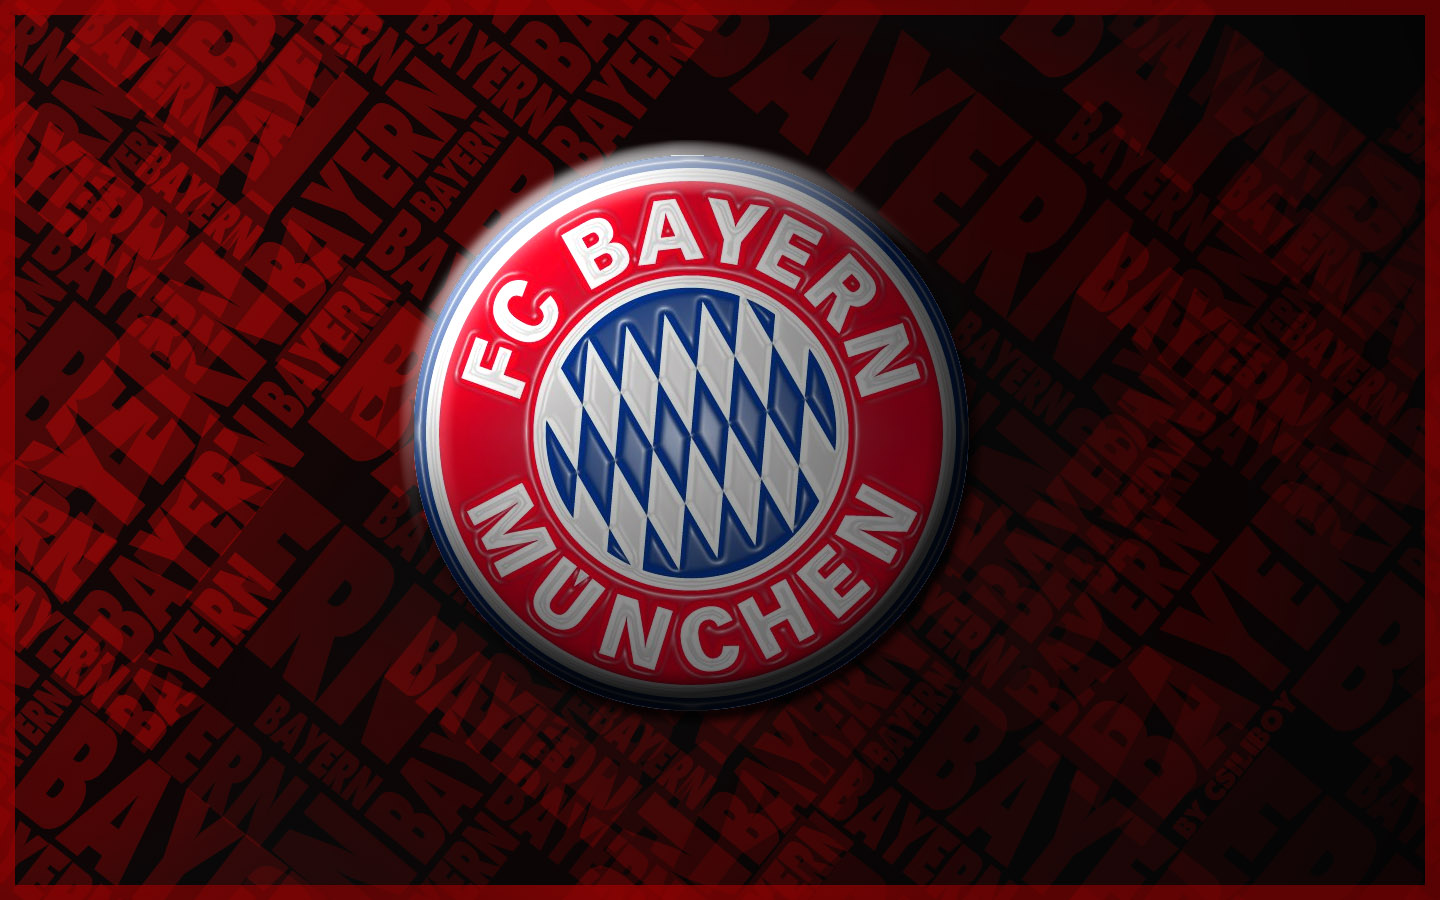 Bayern Munich Wallpaper Hd 3